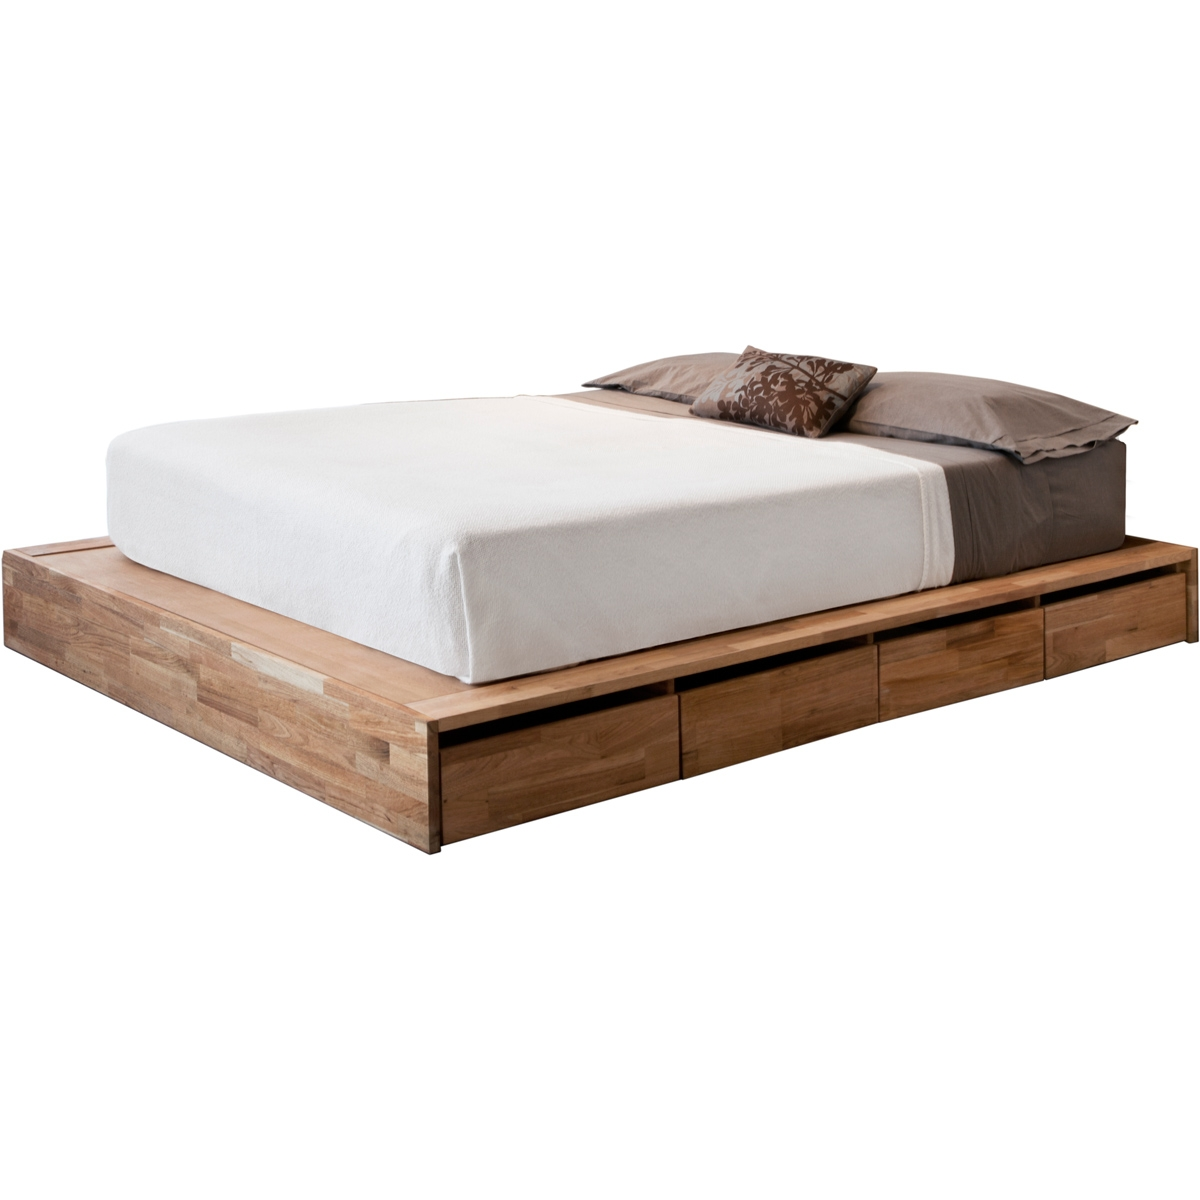 Low Bed Frame With Storage